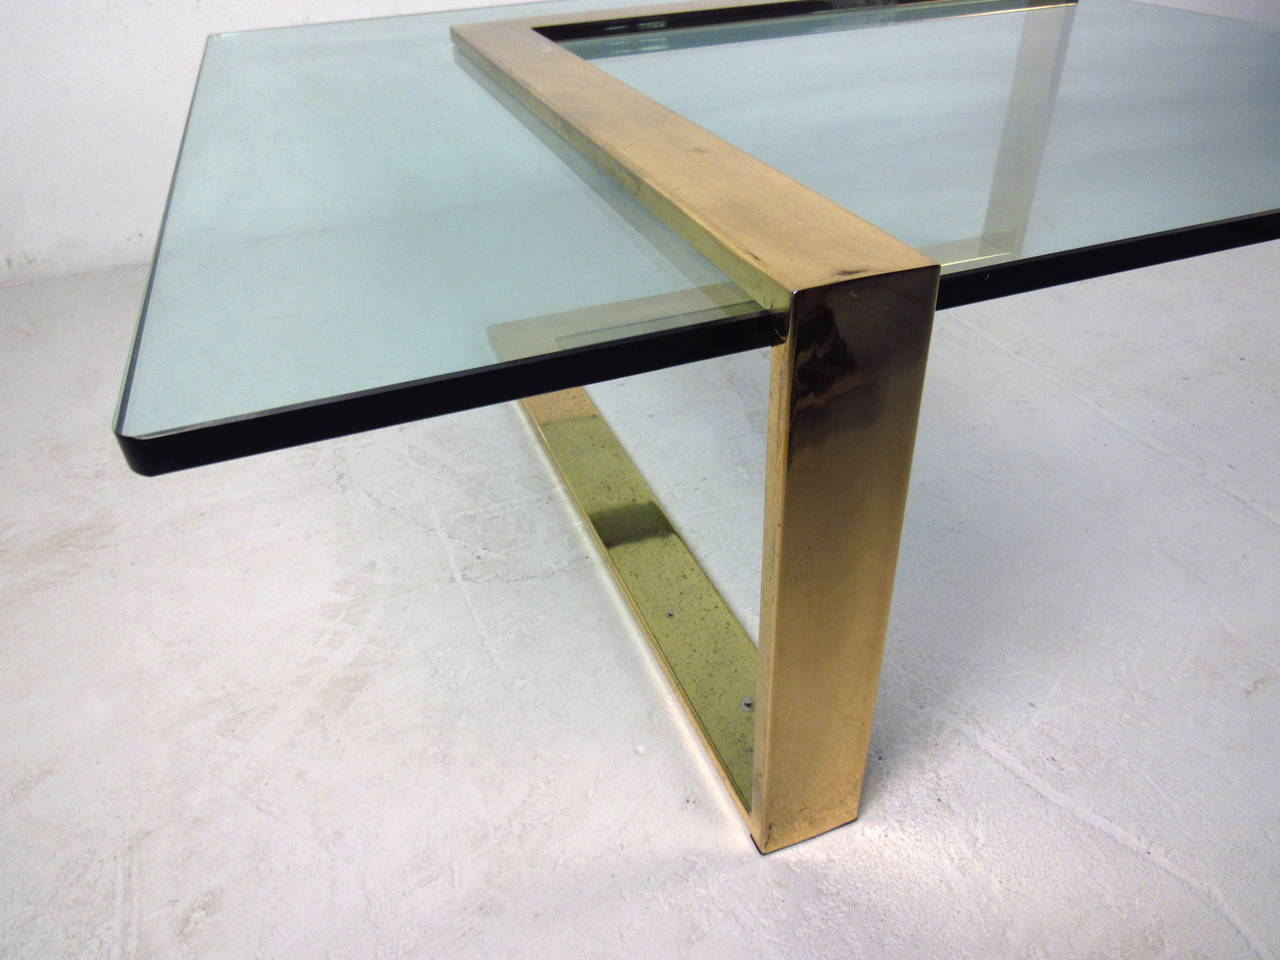 brass l shape coffee table with glass top at 1stdibs. Black Bedroom Furniture Sets. Home Design Ideas